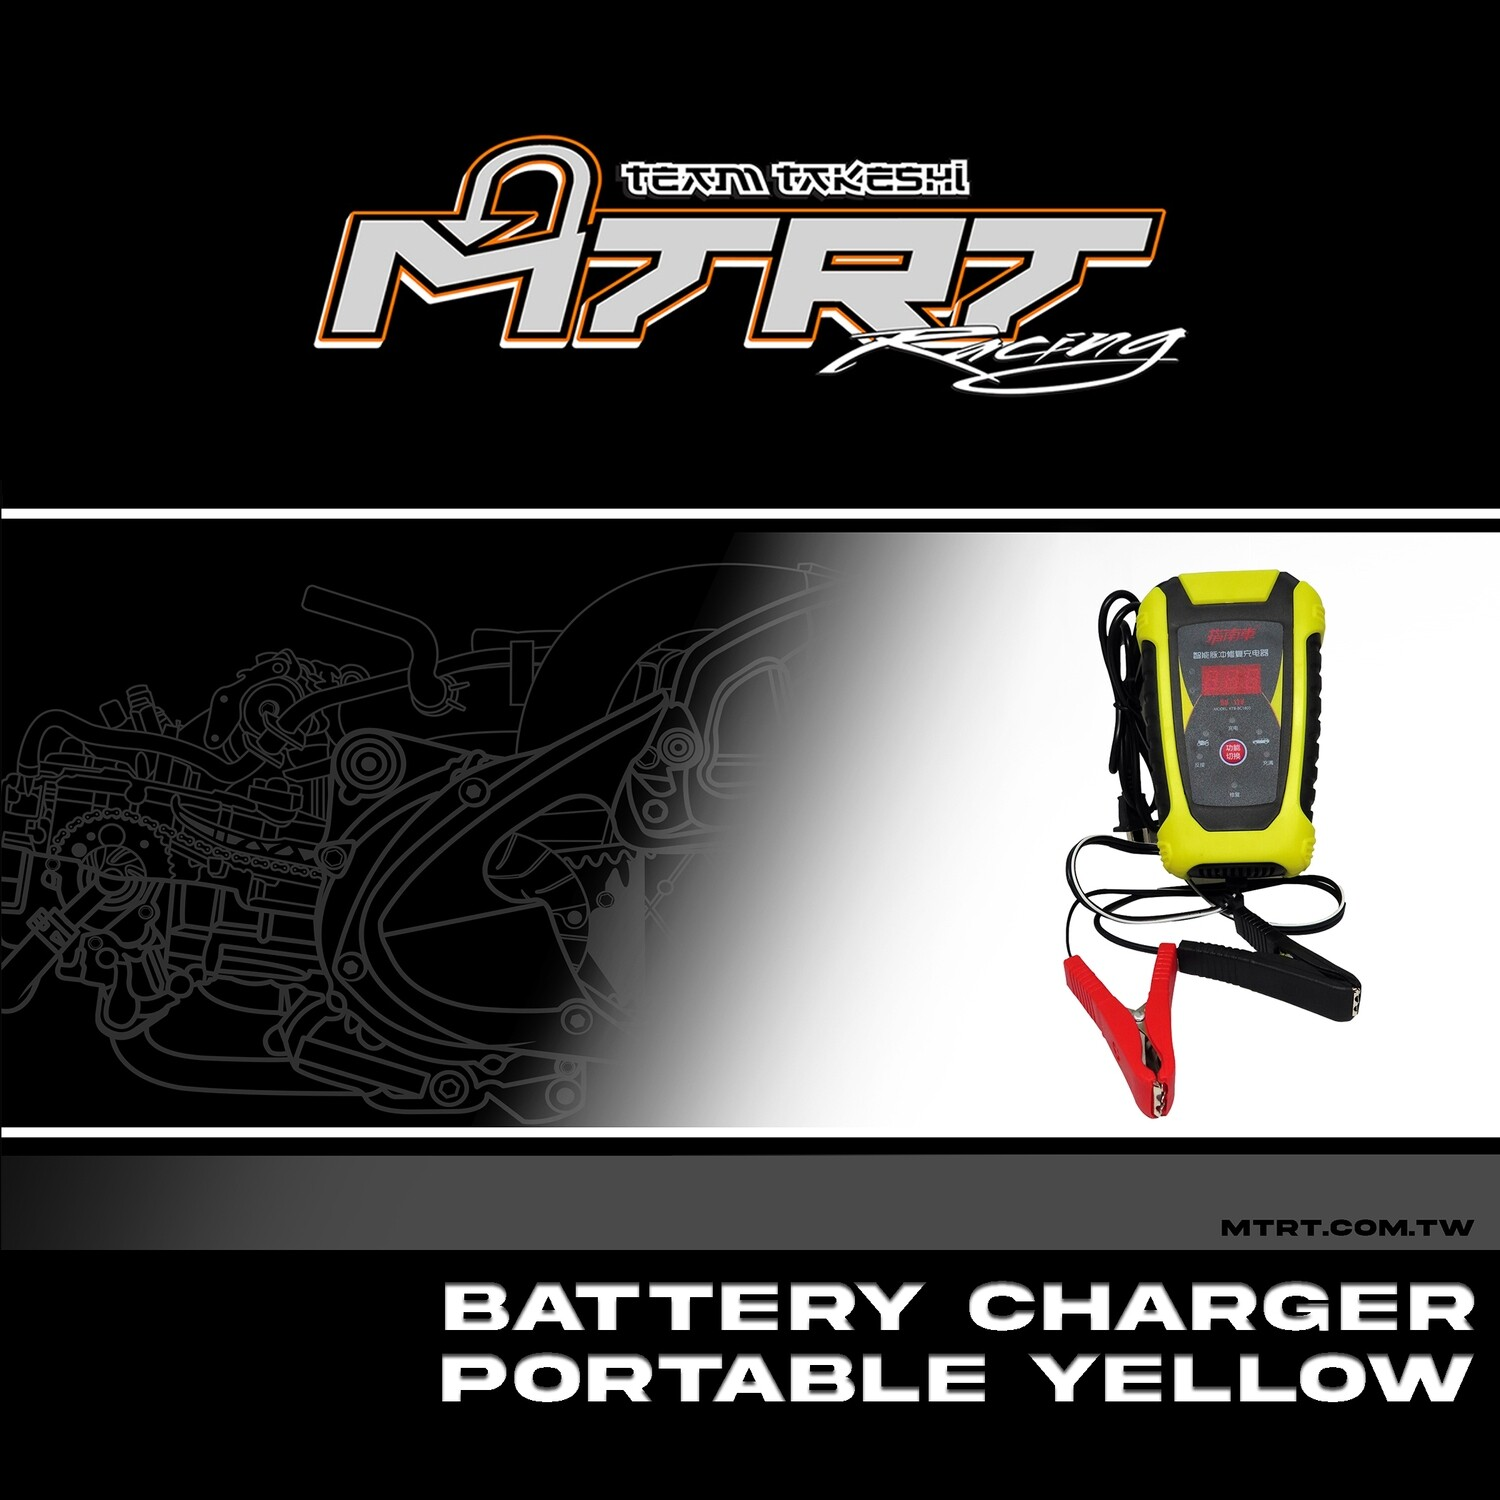 PORTABLE BATTERY CHARGER  YELLOW